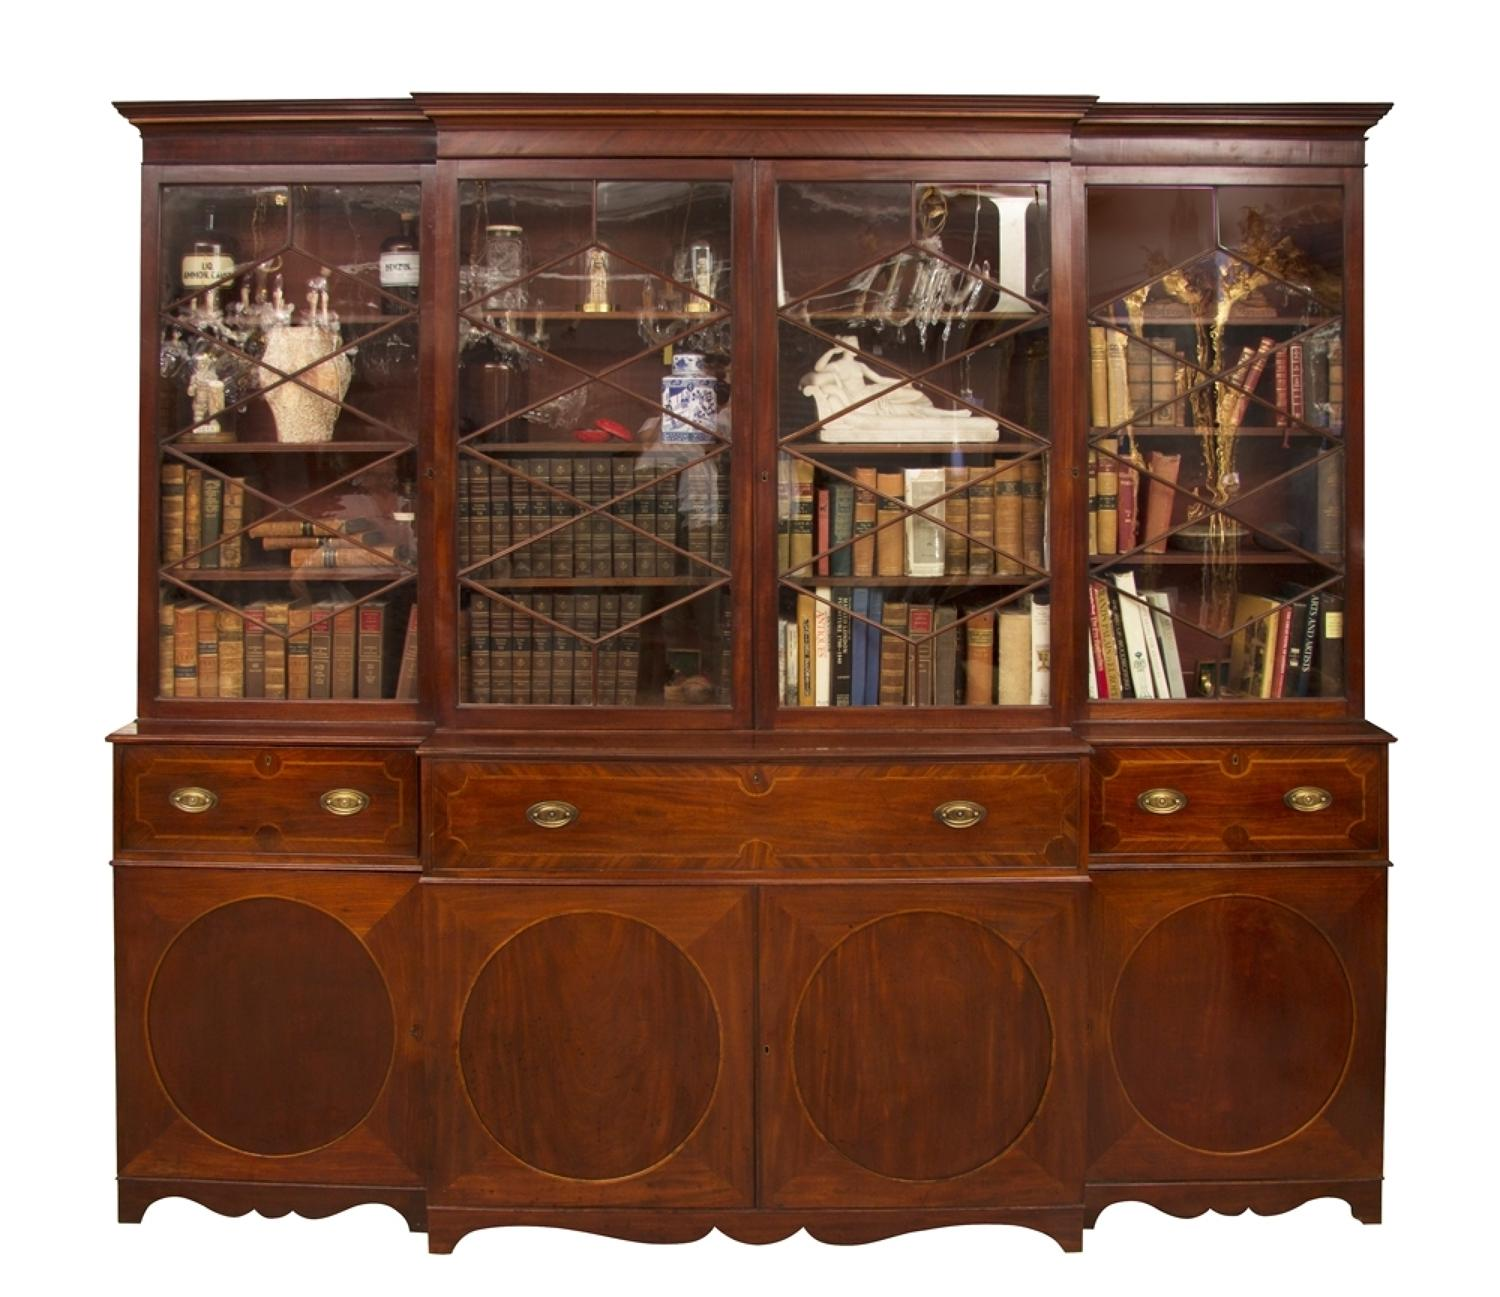 A Georgian mahogany breakfront secretaire bookcase